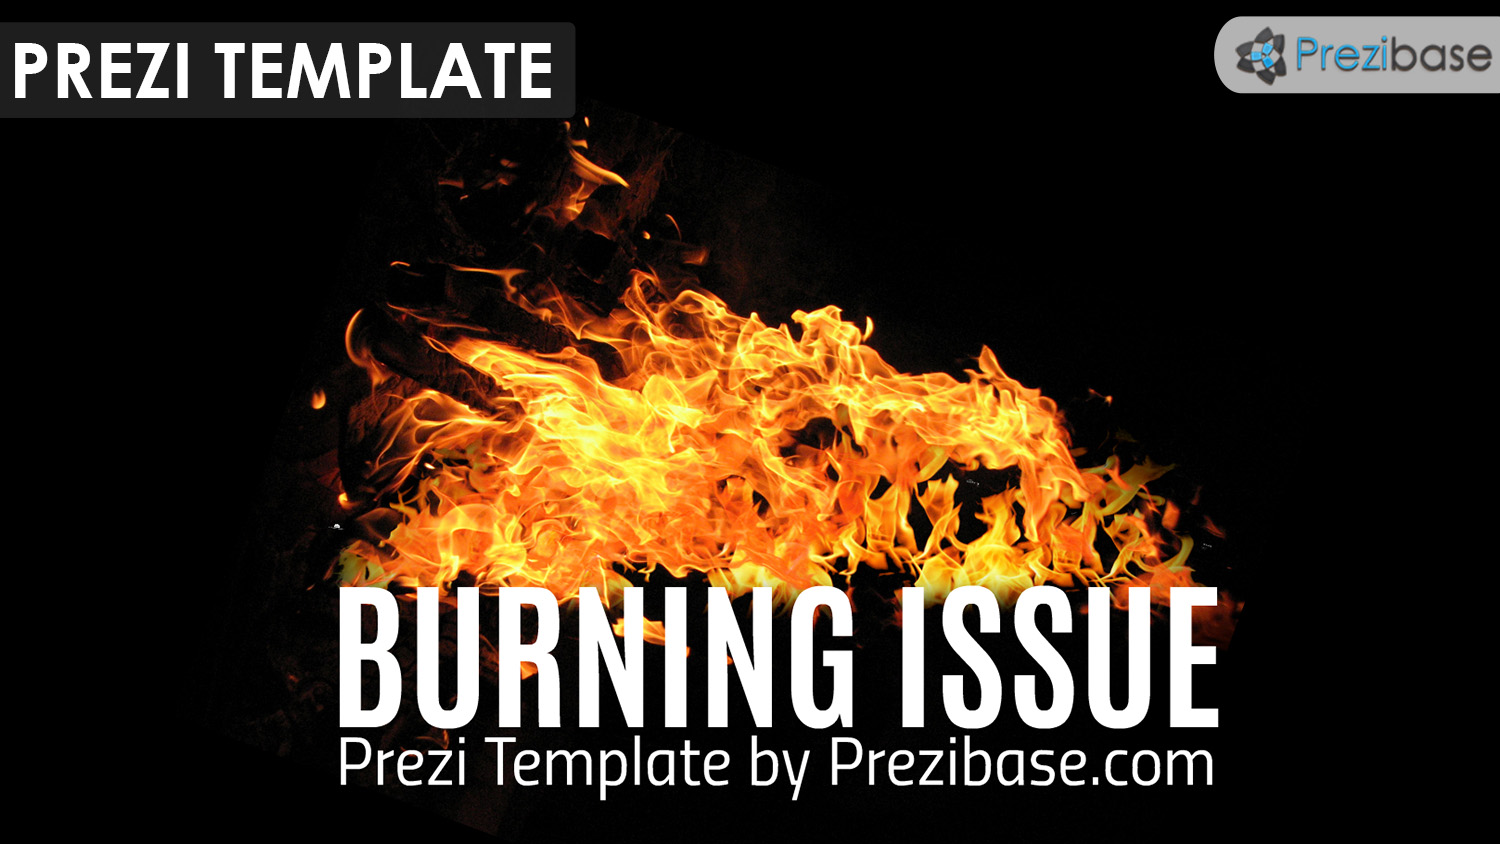 Fire and flames prezi template for burning issue